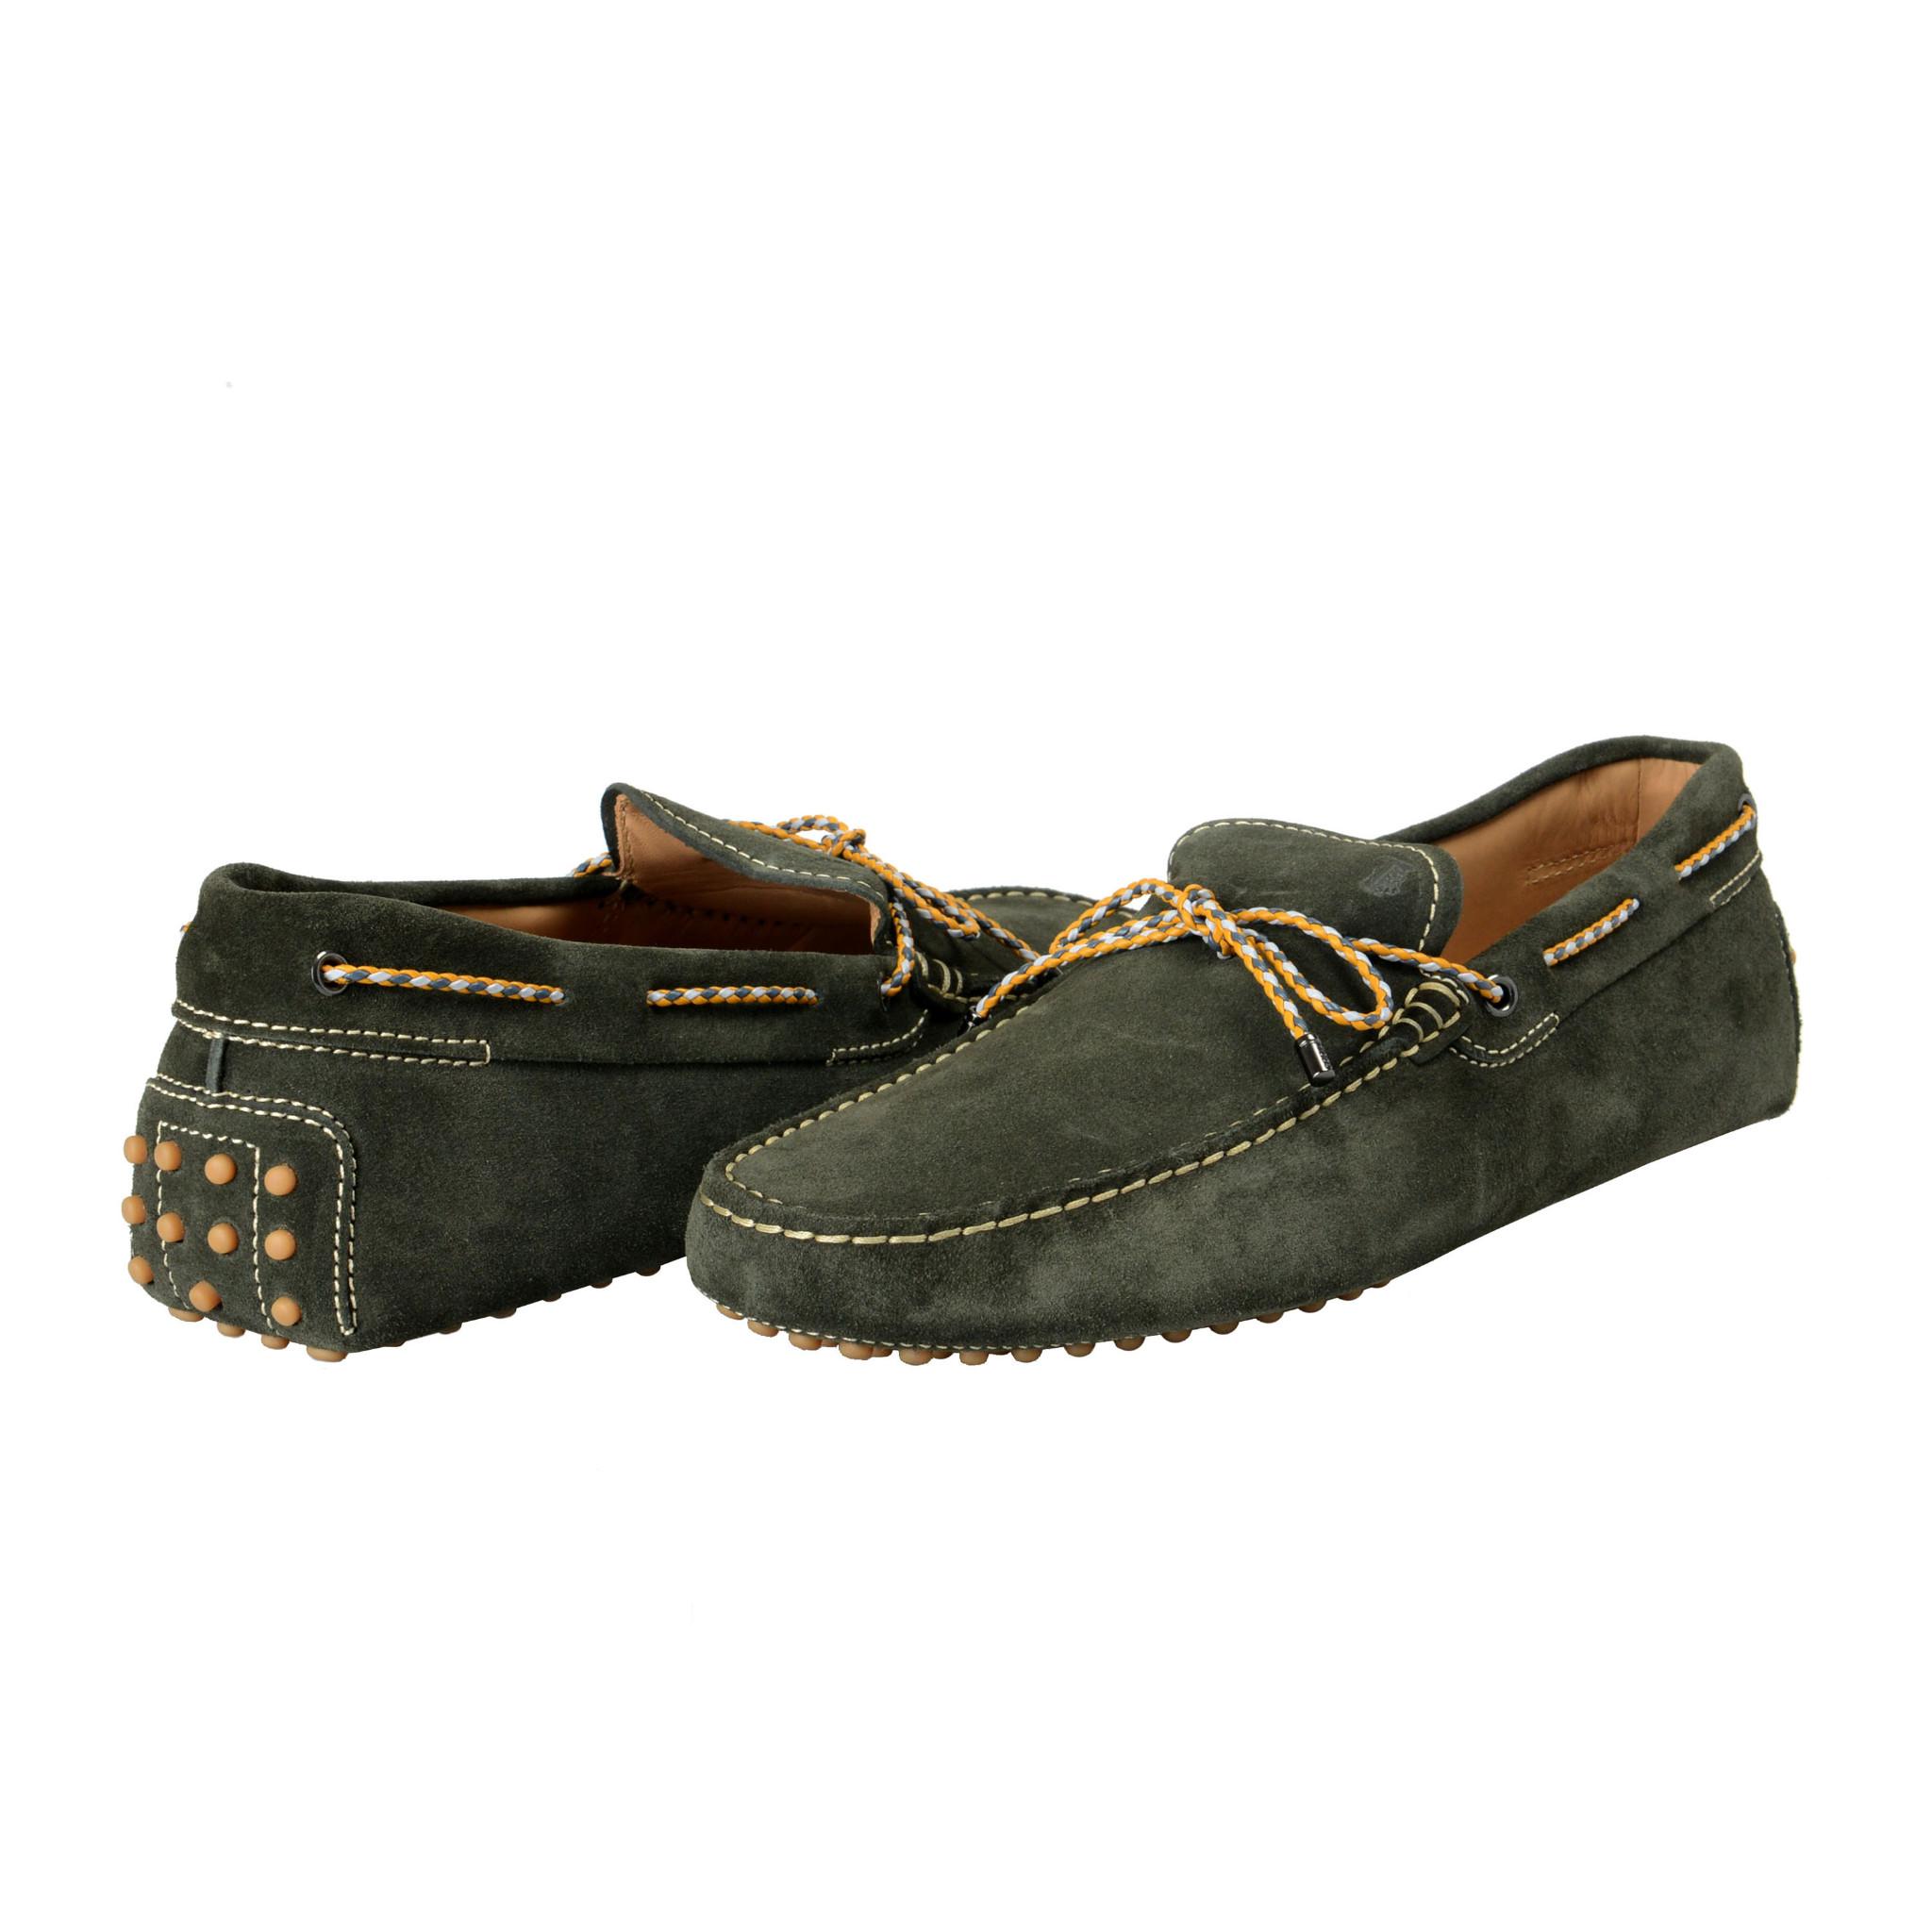 Tod/'s Men/'s Moss Green Suede Leather Loafers Driving Moccasins Shoes